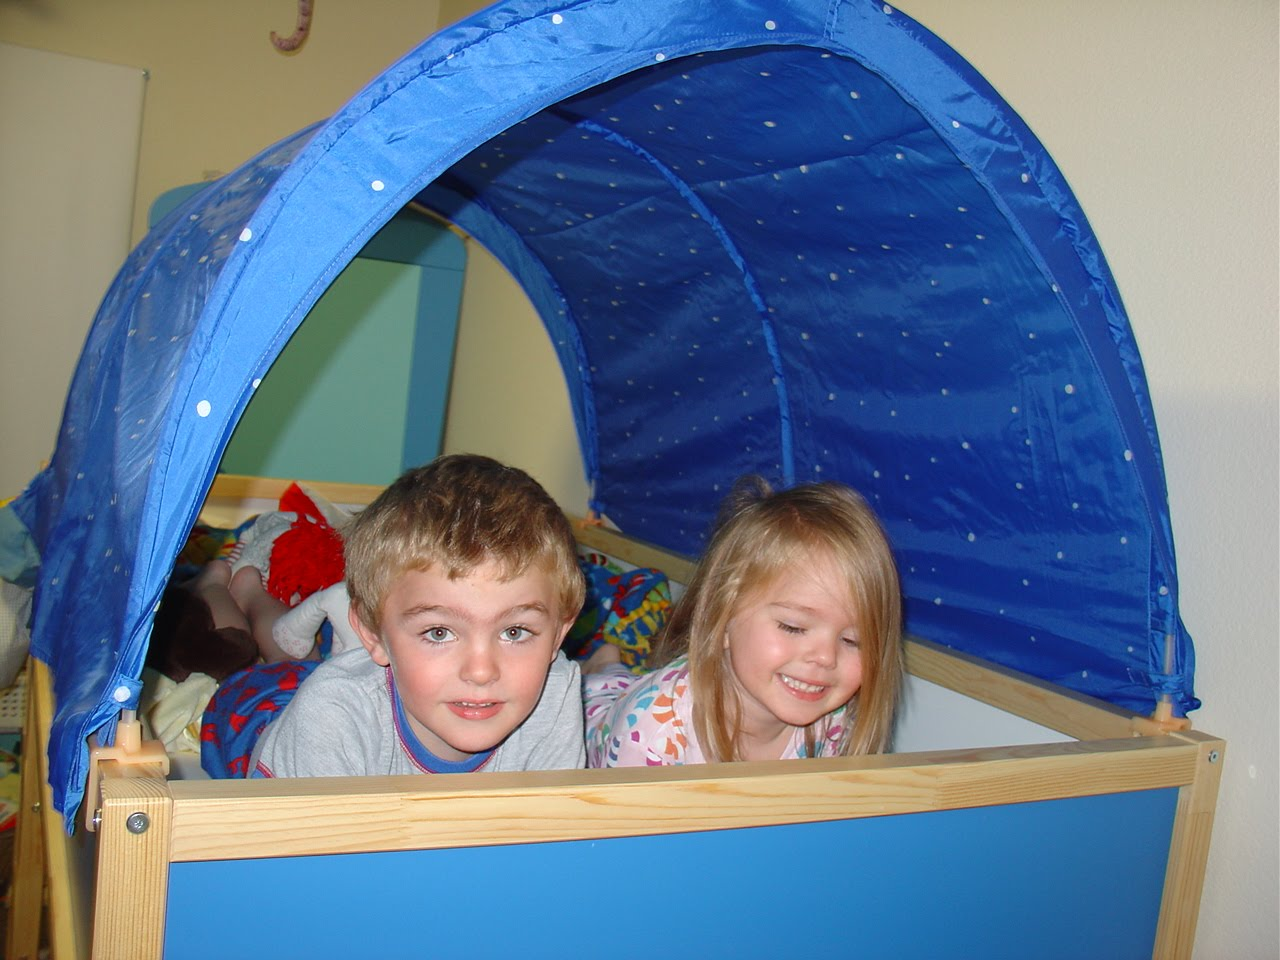 Bunk Bed Tent Top http://mamasmagic.blogspot.com/2010/11/weekend-fun.html